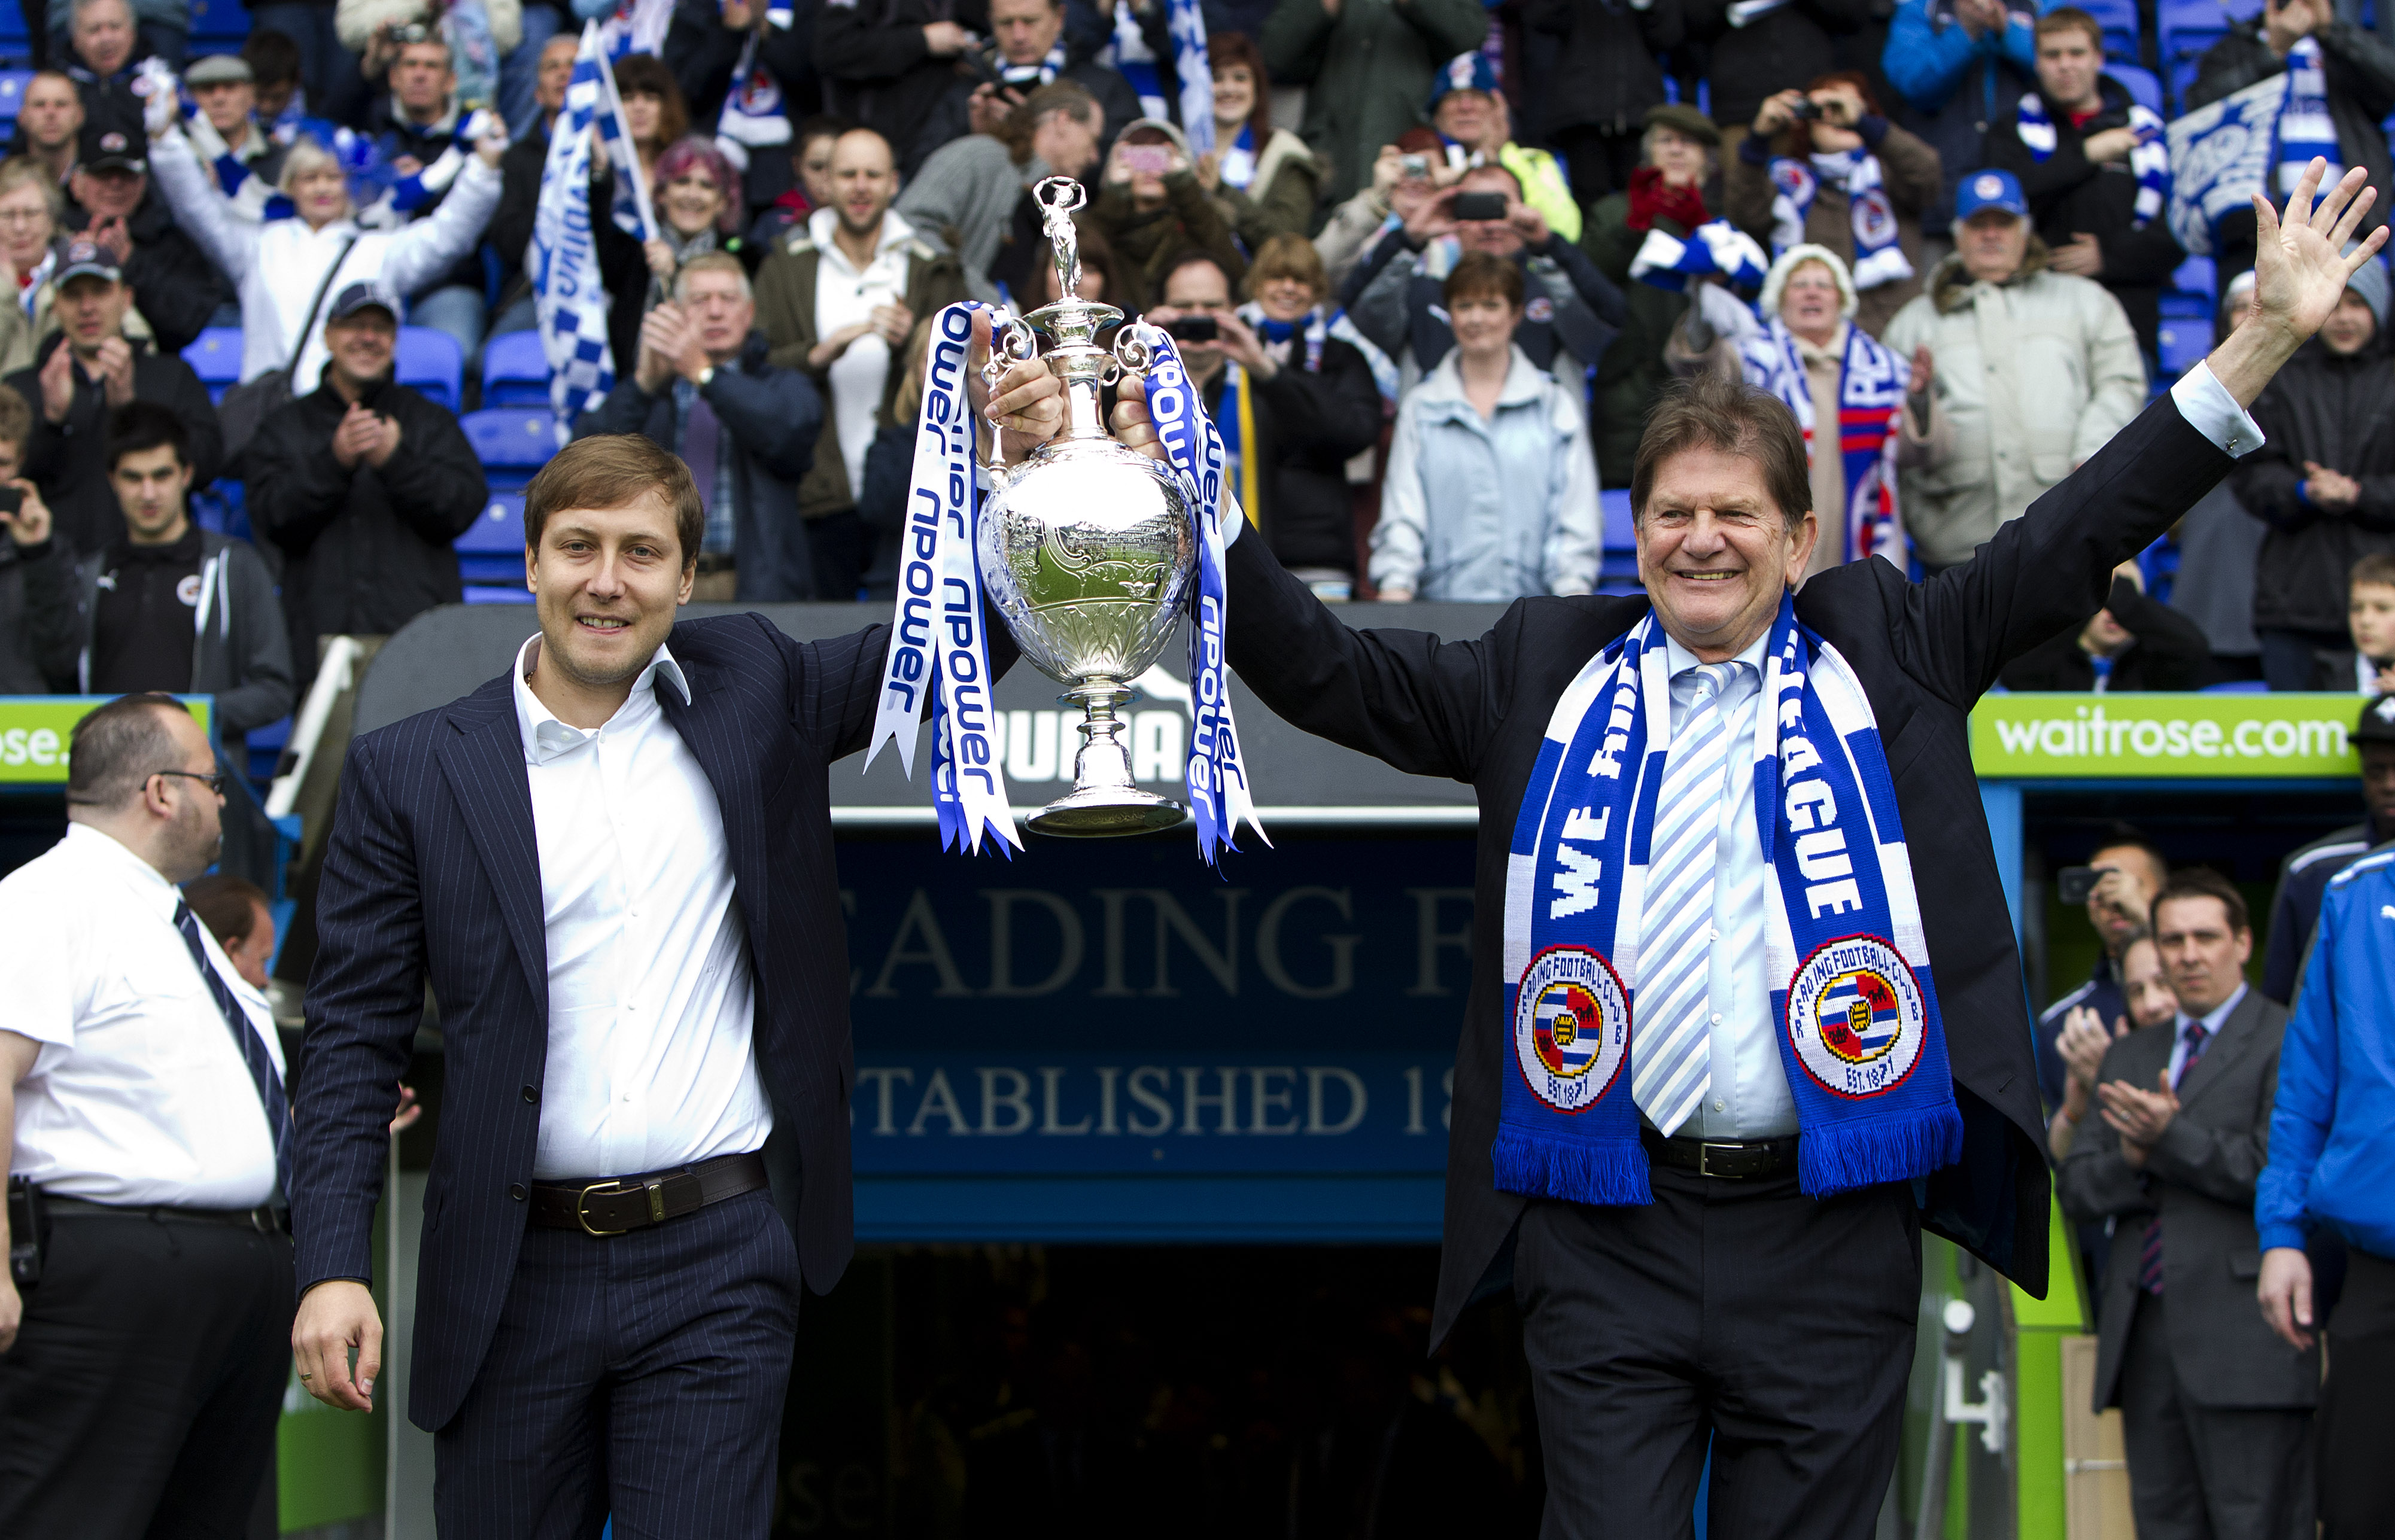 Reading Football Club Championship Trophy Victory Parade